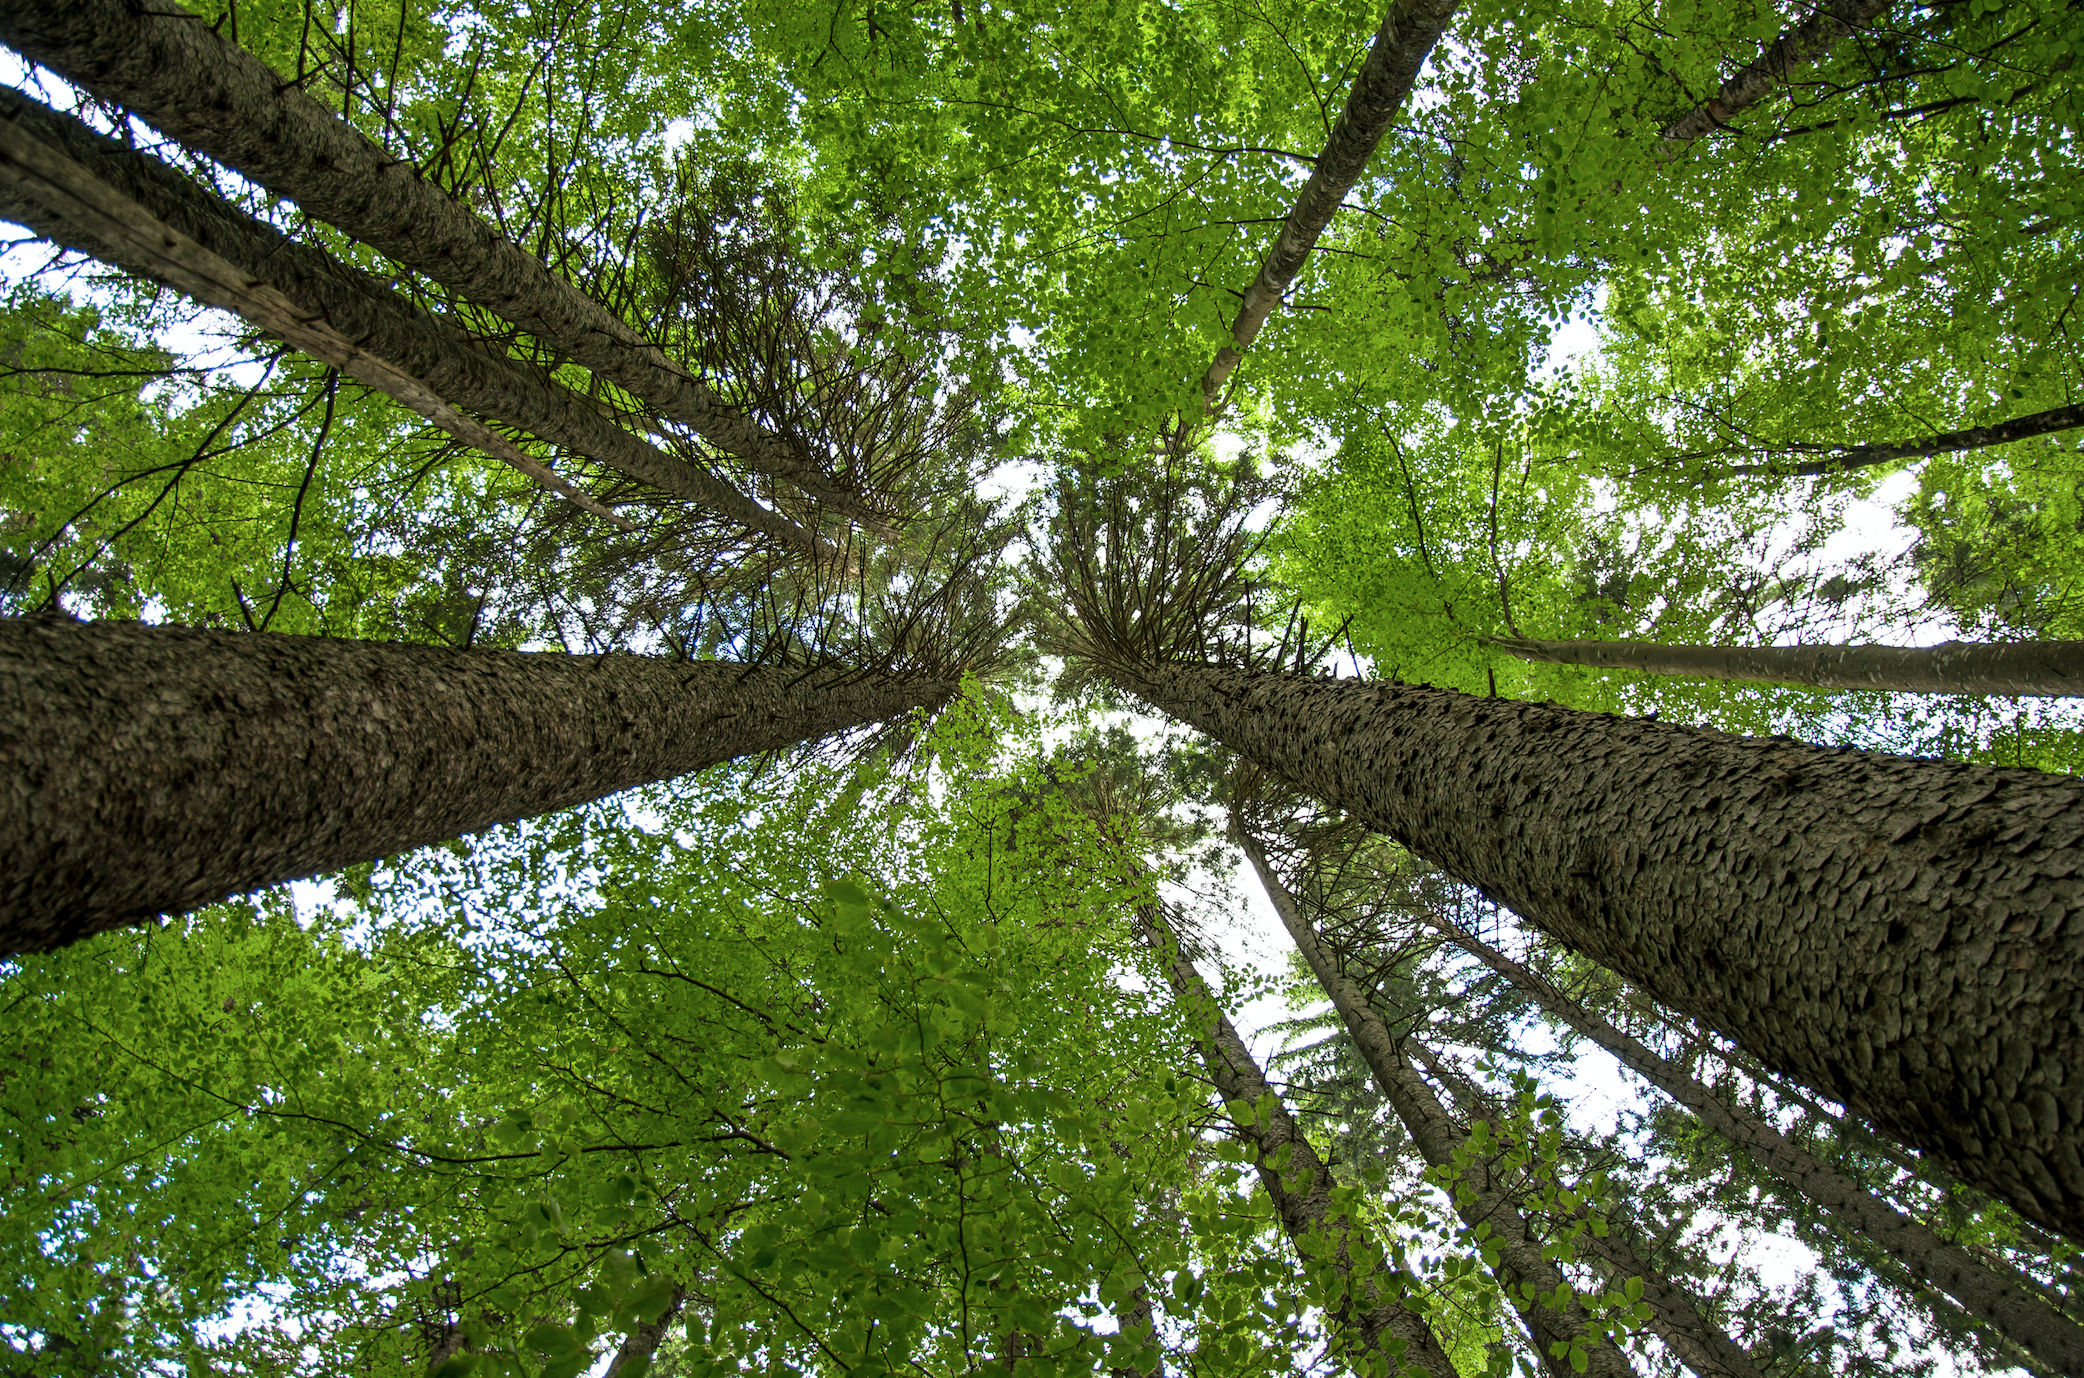 EIT Climate-KIC to launch EU forestry innovation programme